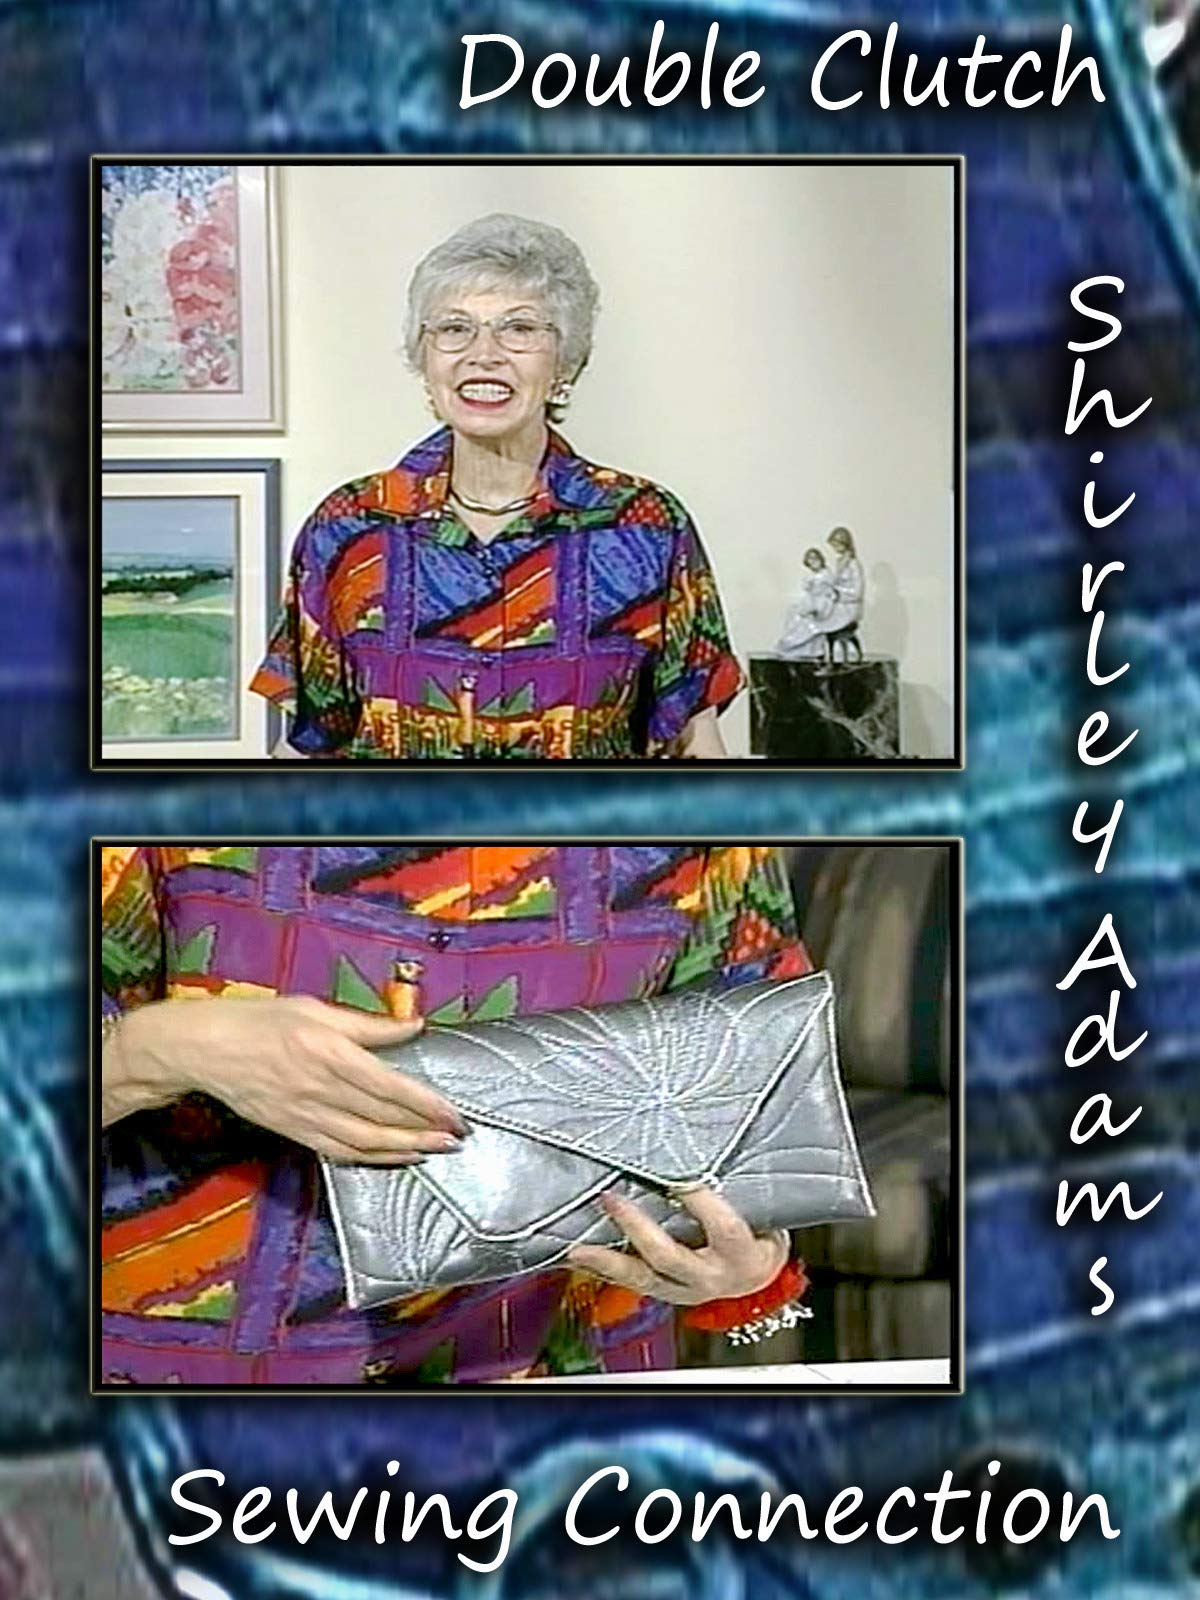 Double Clutch with Shirley Adams Sewing Connection